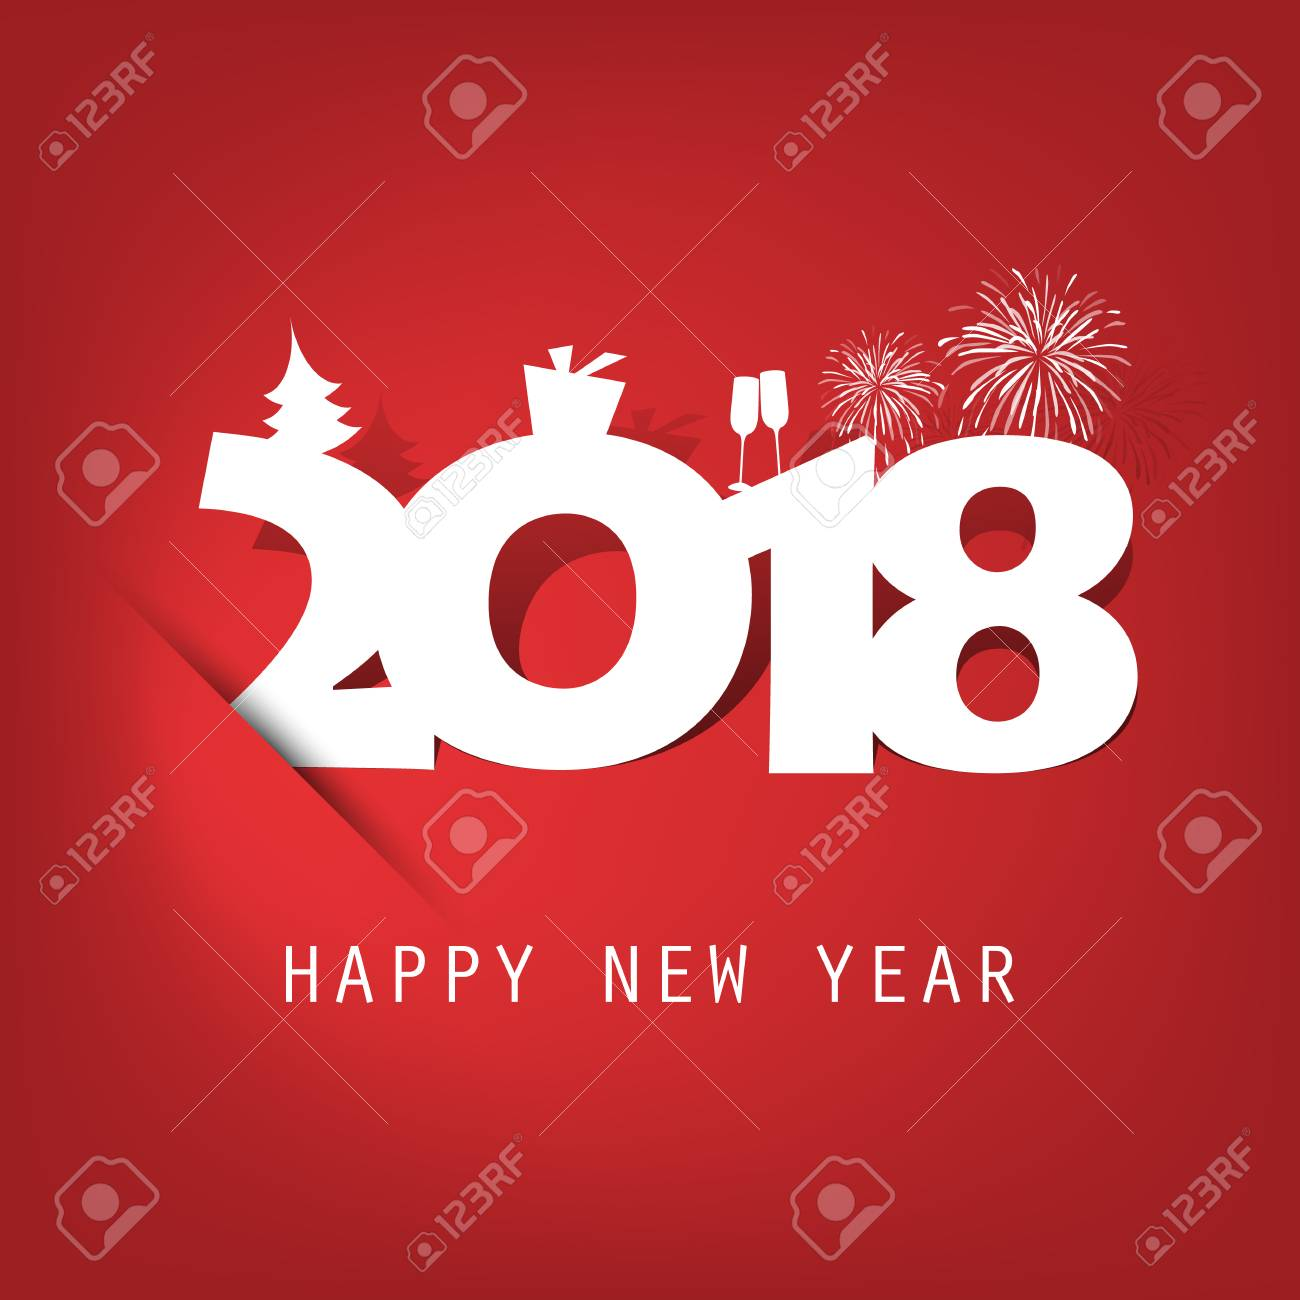 simple red and white new year card cover or background design template with christmas tree